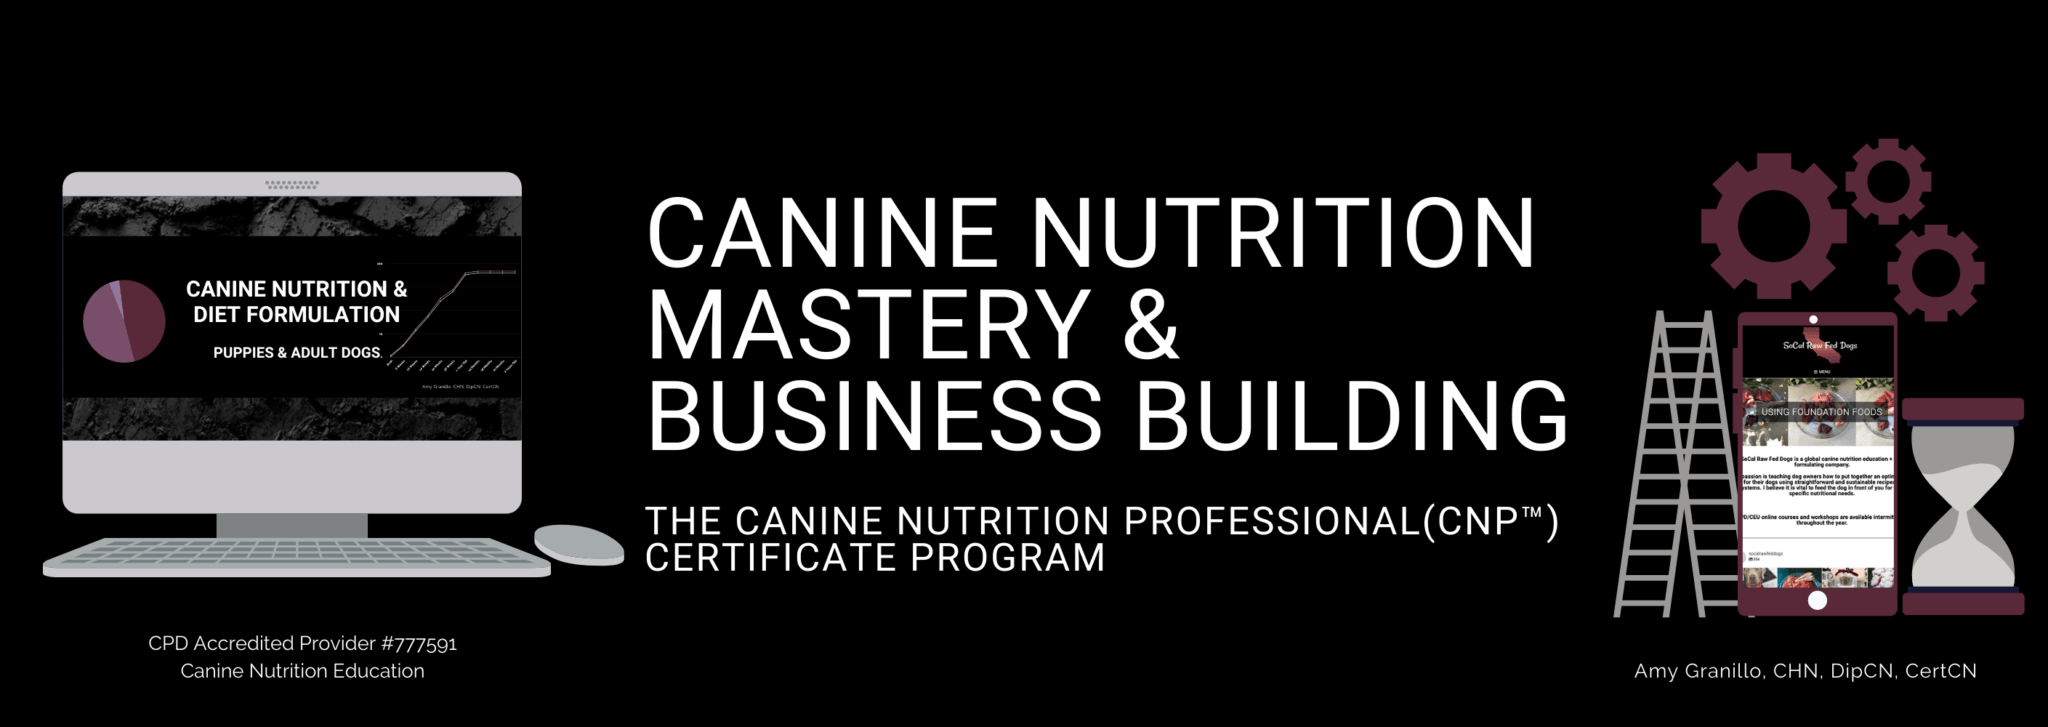 The Canine Nutrition Professional (CNP™) Program